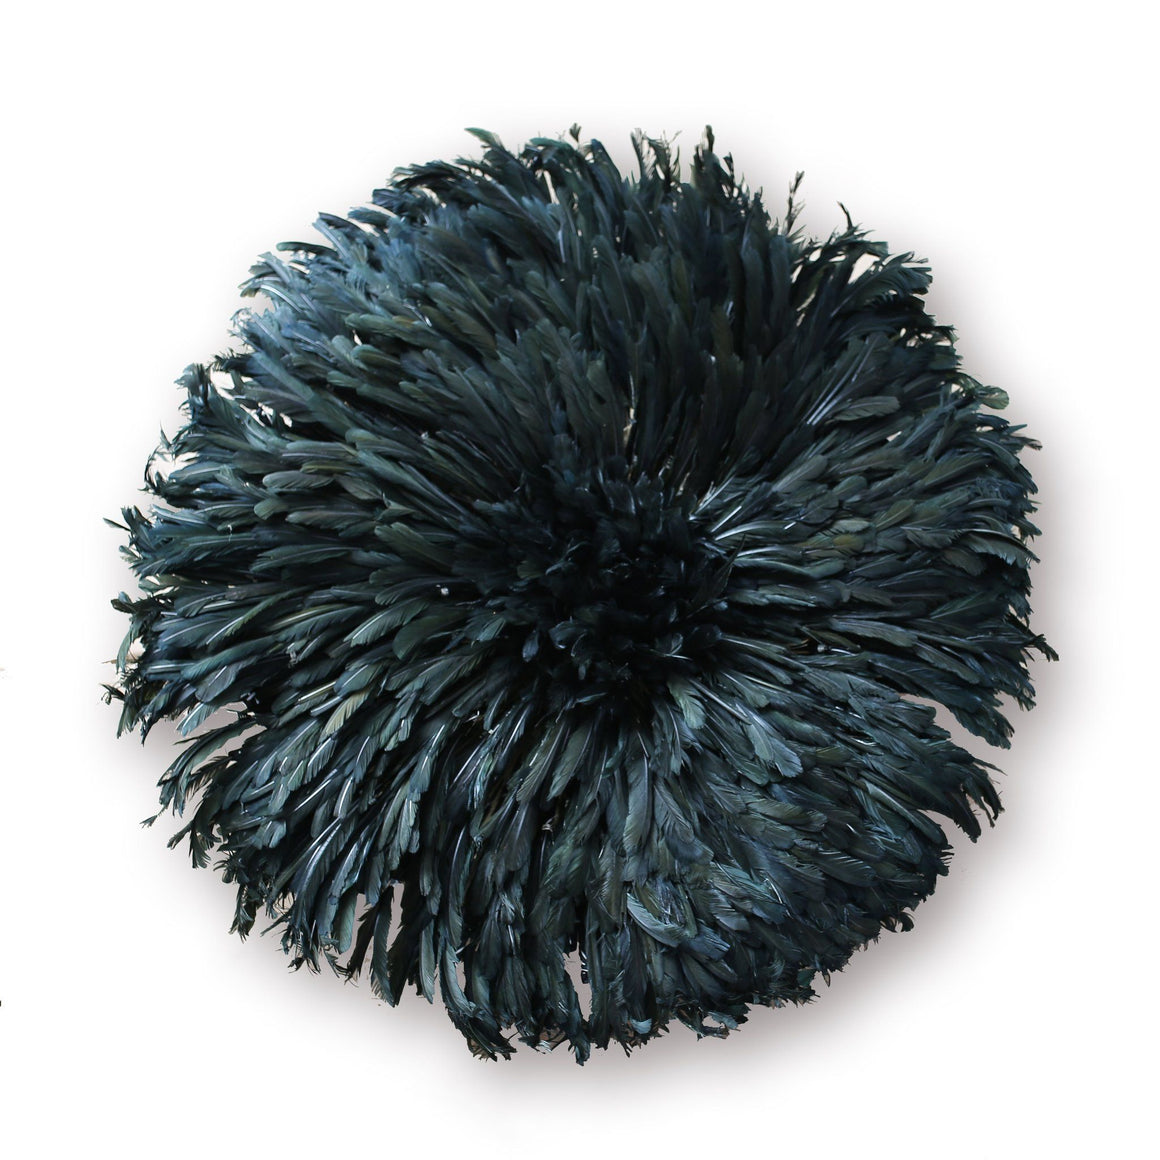 Black Onyx Large Juju Hat - Canary Lane - Curated Textiles